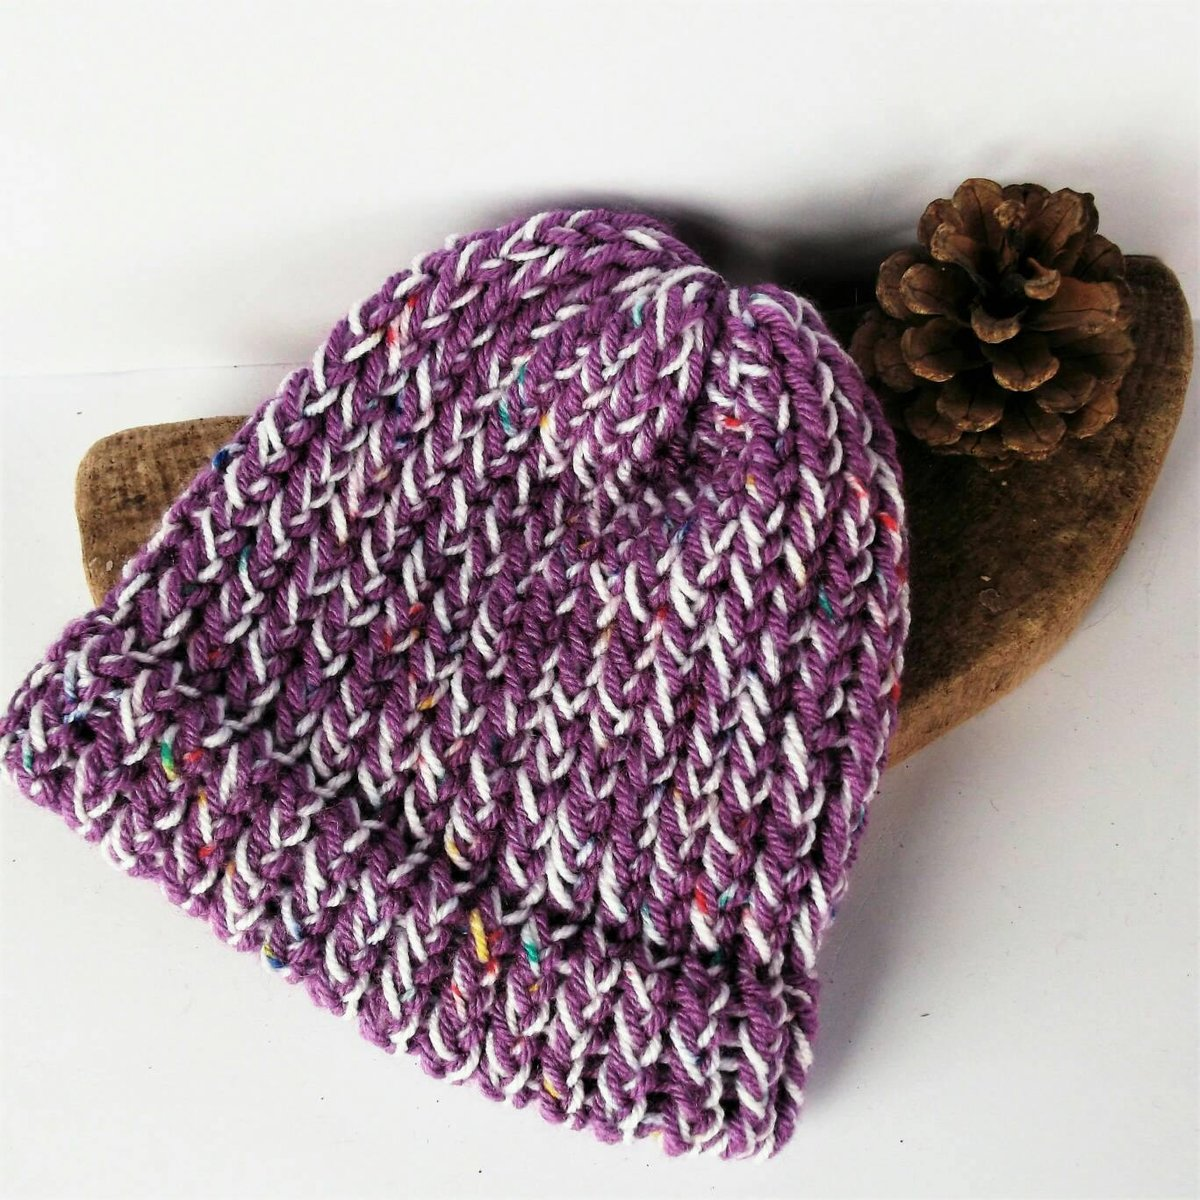 SALE ITEM - Purple baby hat, purple baby beanie, toddler hat, baby …  http:// etsy.me/2wKiwRp  &nbsp;   #Etsychaching #Etsysale<br>http://pic.twitter.com/FREMfRVueU